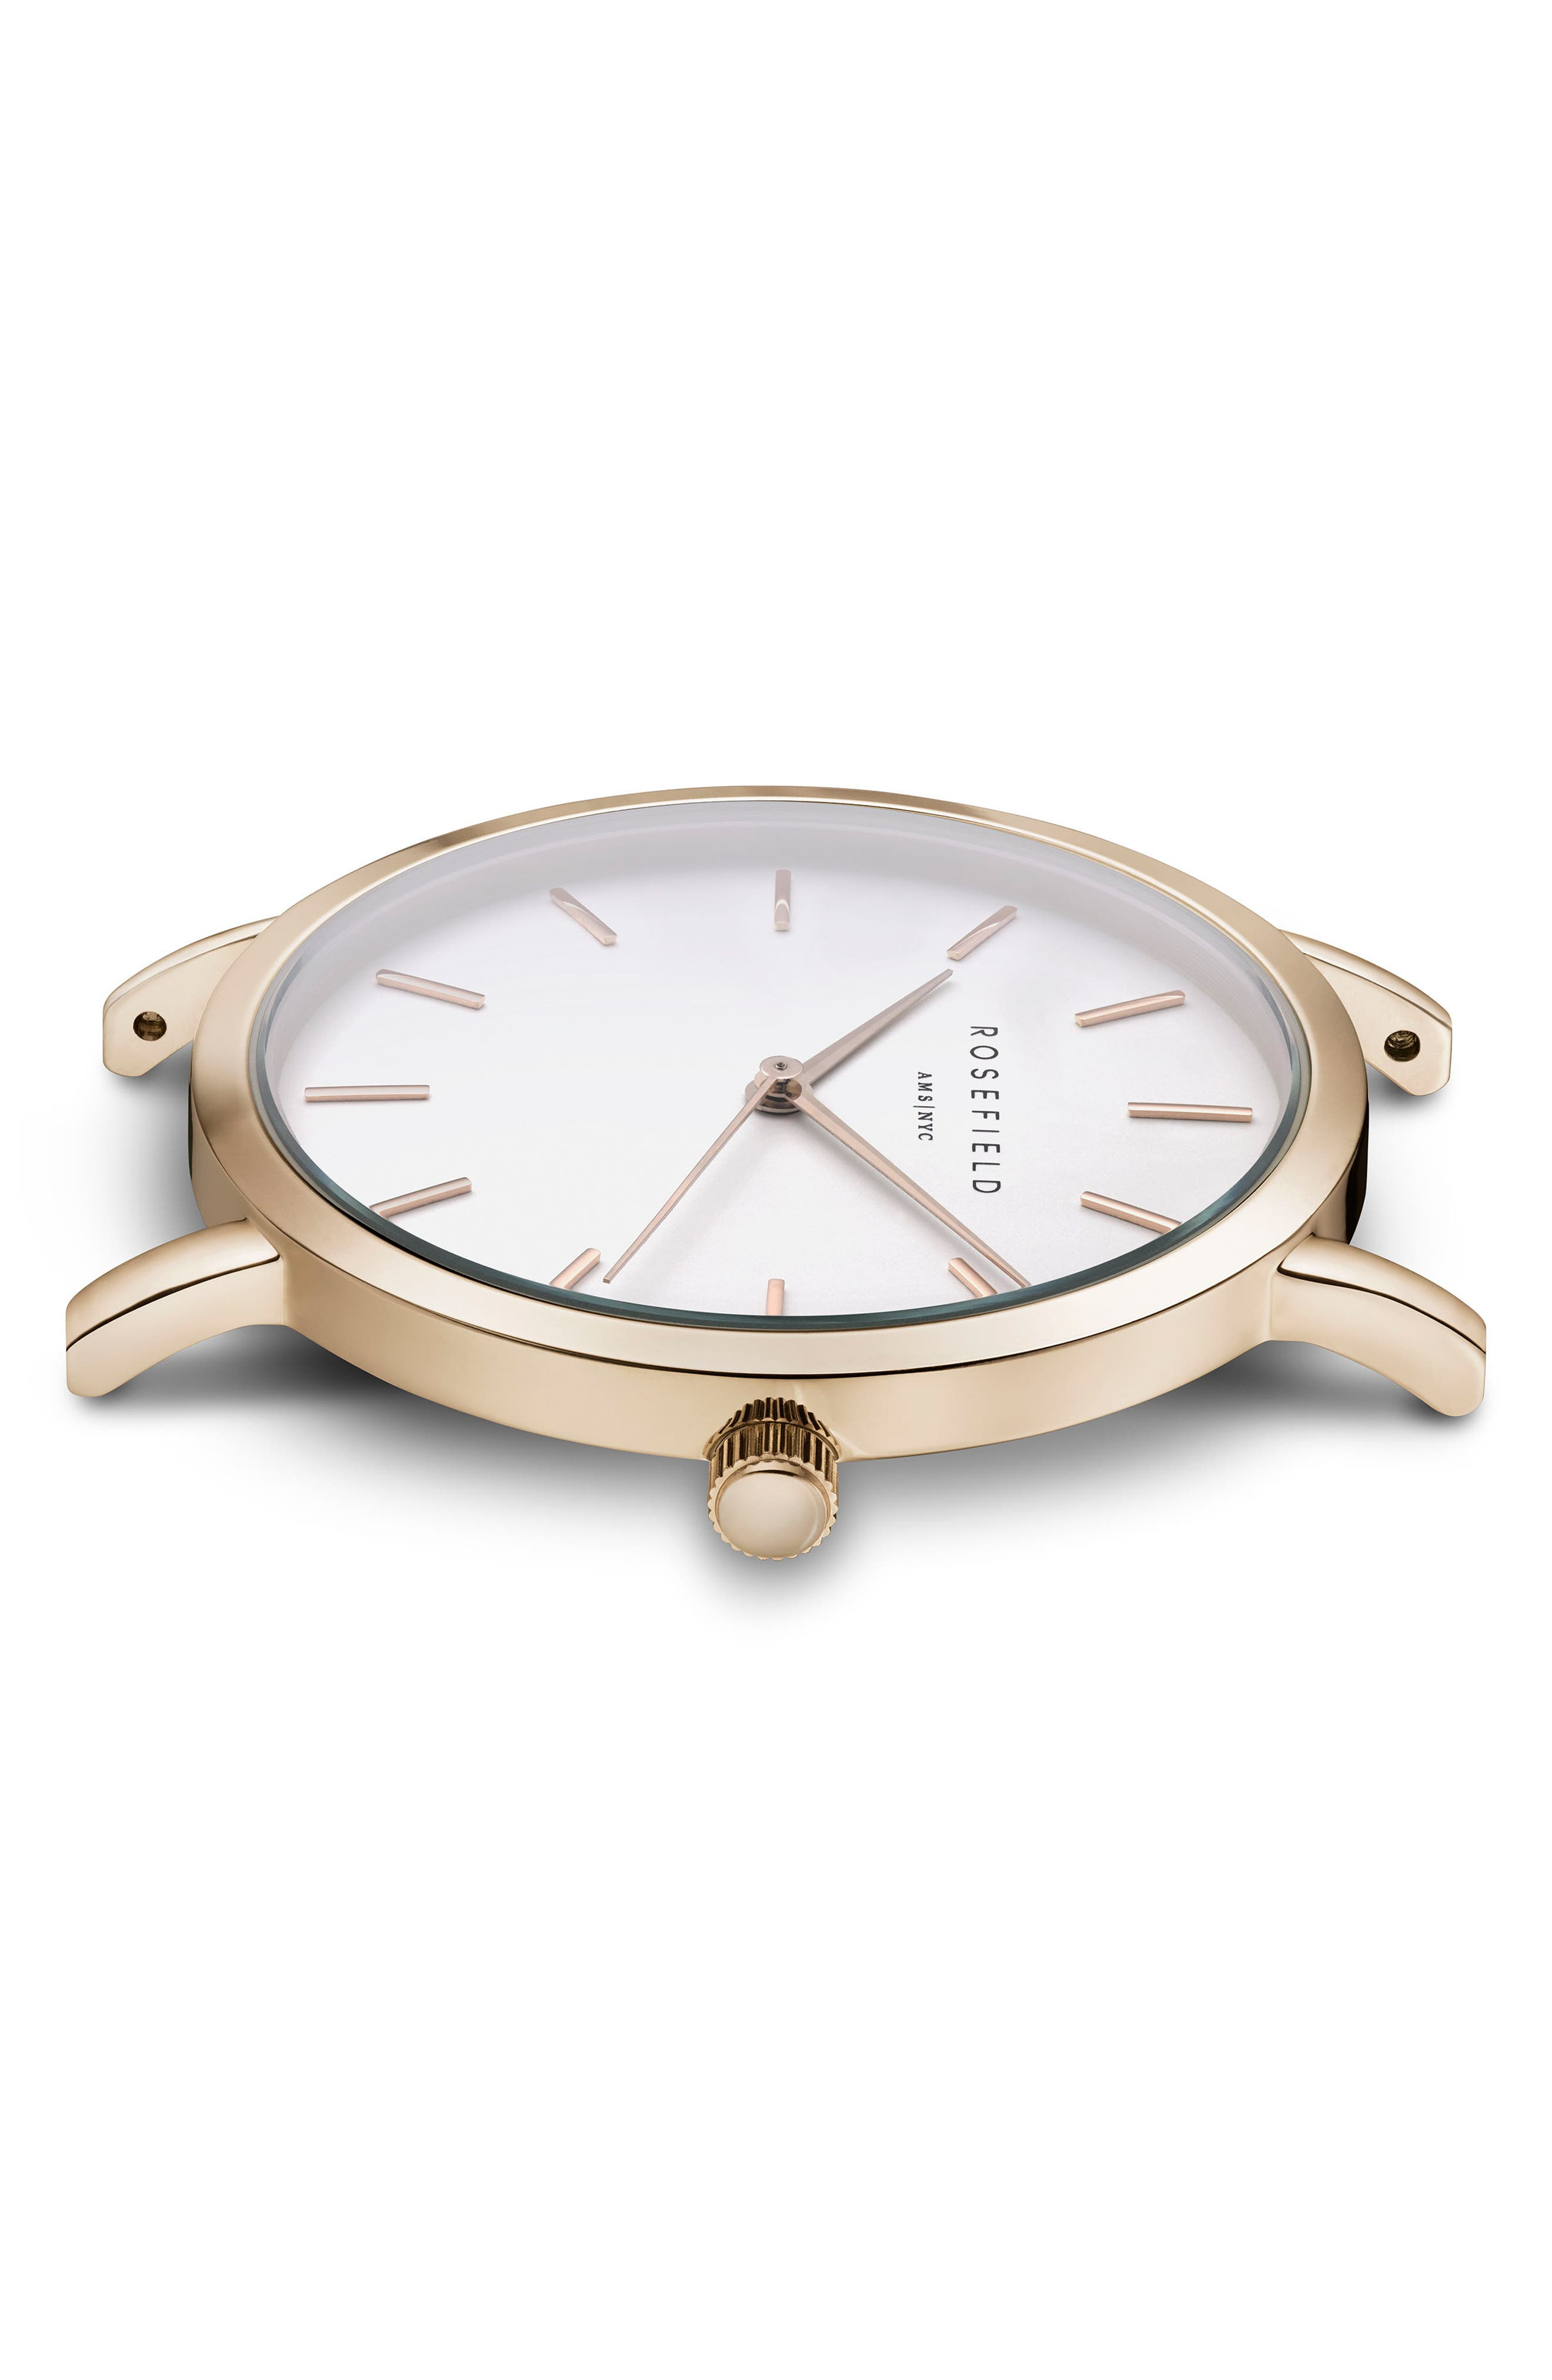 Tribeca Mesh Strap Watch, 33mm,                             Alternate thumbnail 3, color,                             GOLD/ WHITE/ GOLD